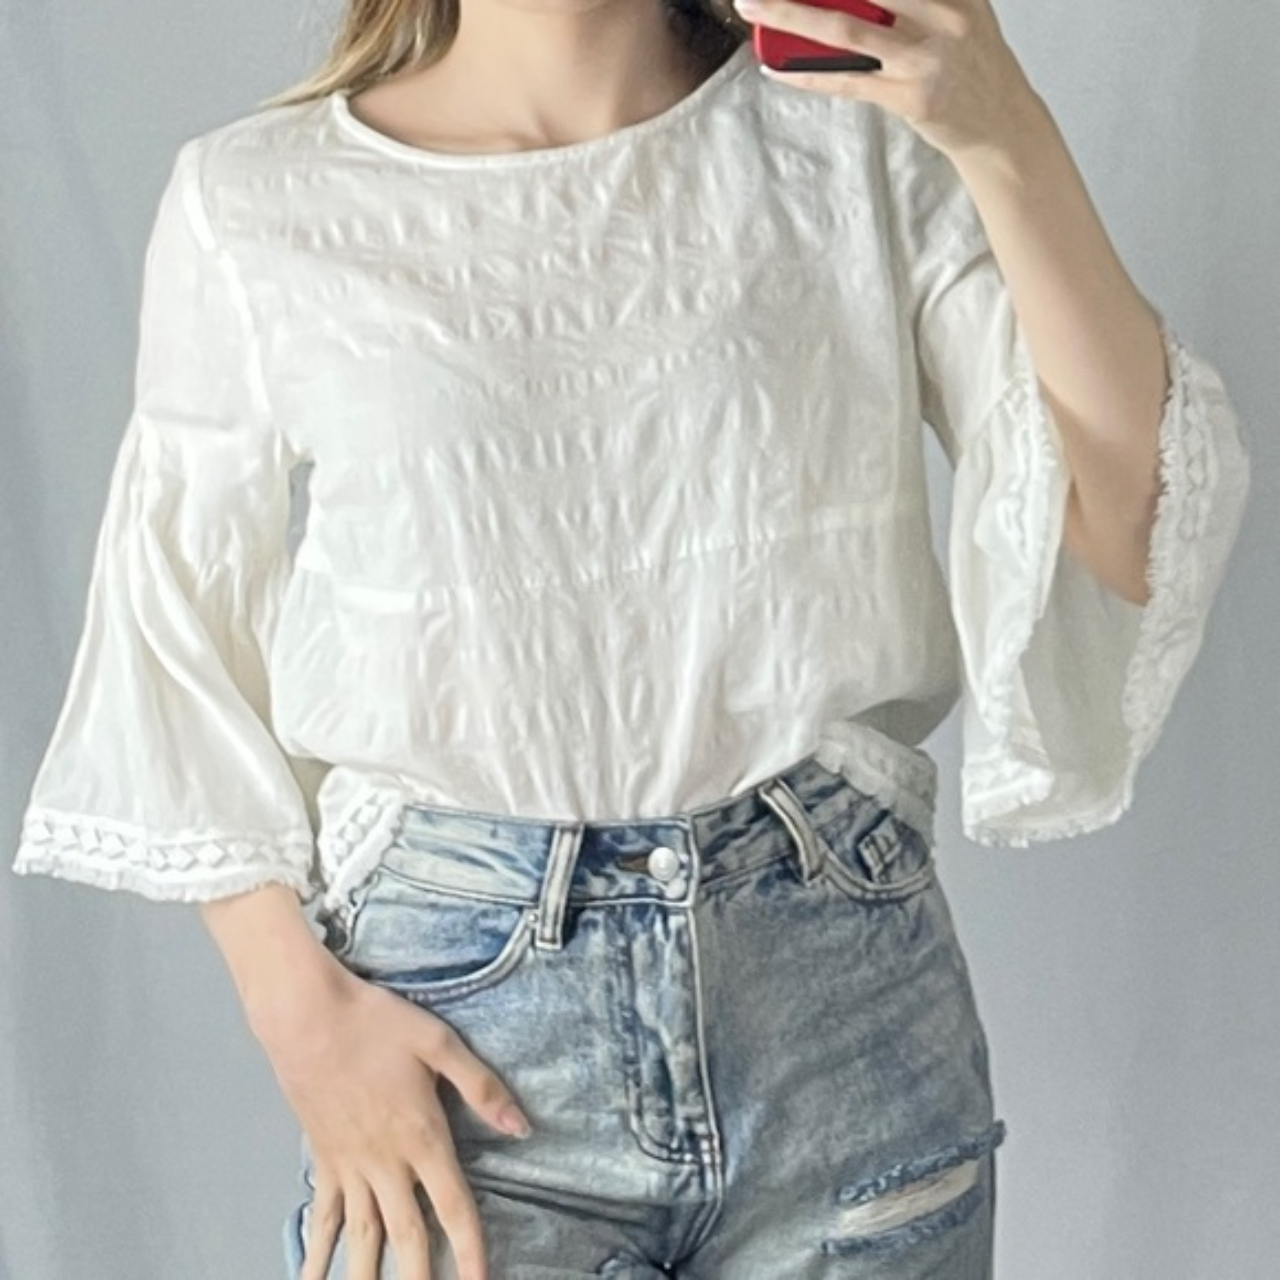 Product Image 1 - Dolan White Bell Sleeve Top,